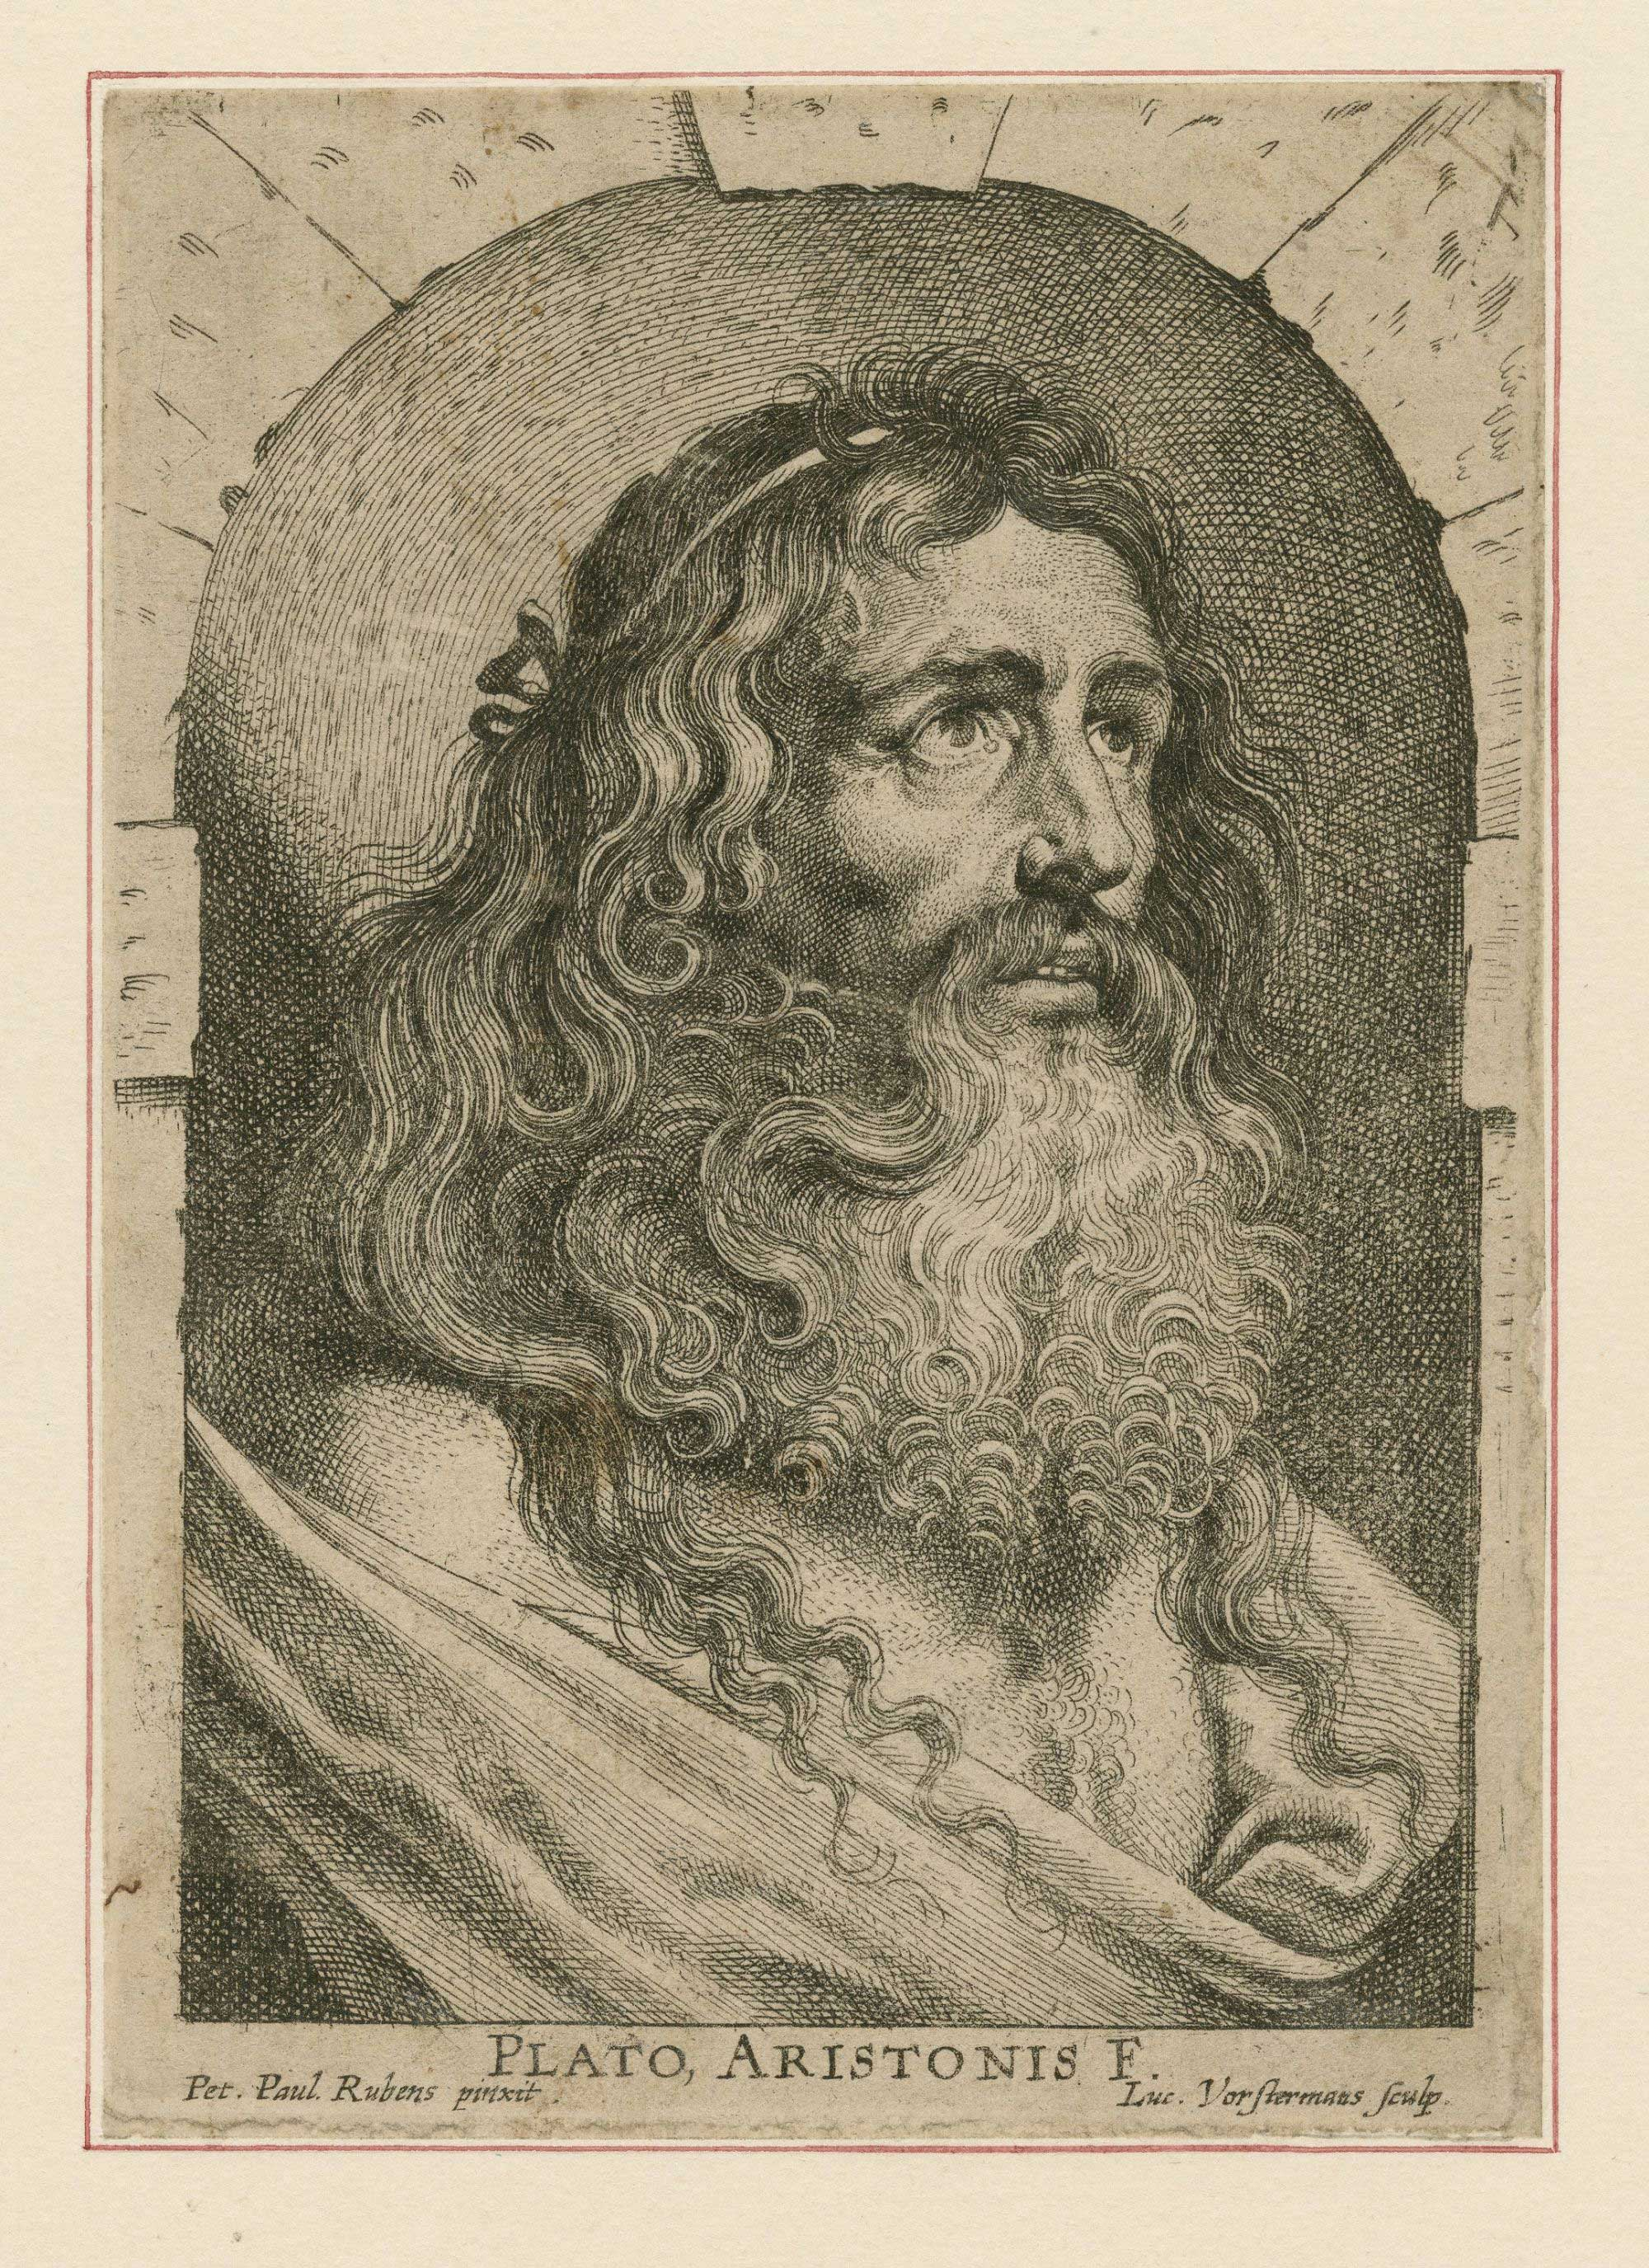 Engraving of Plato